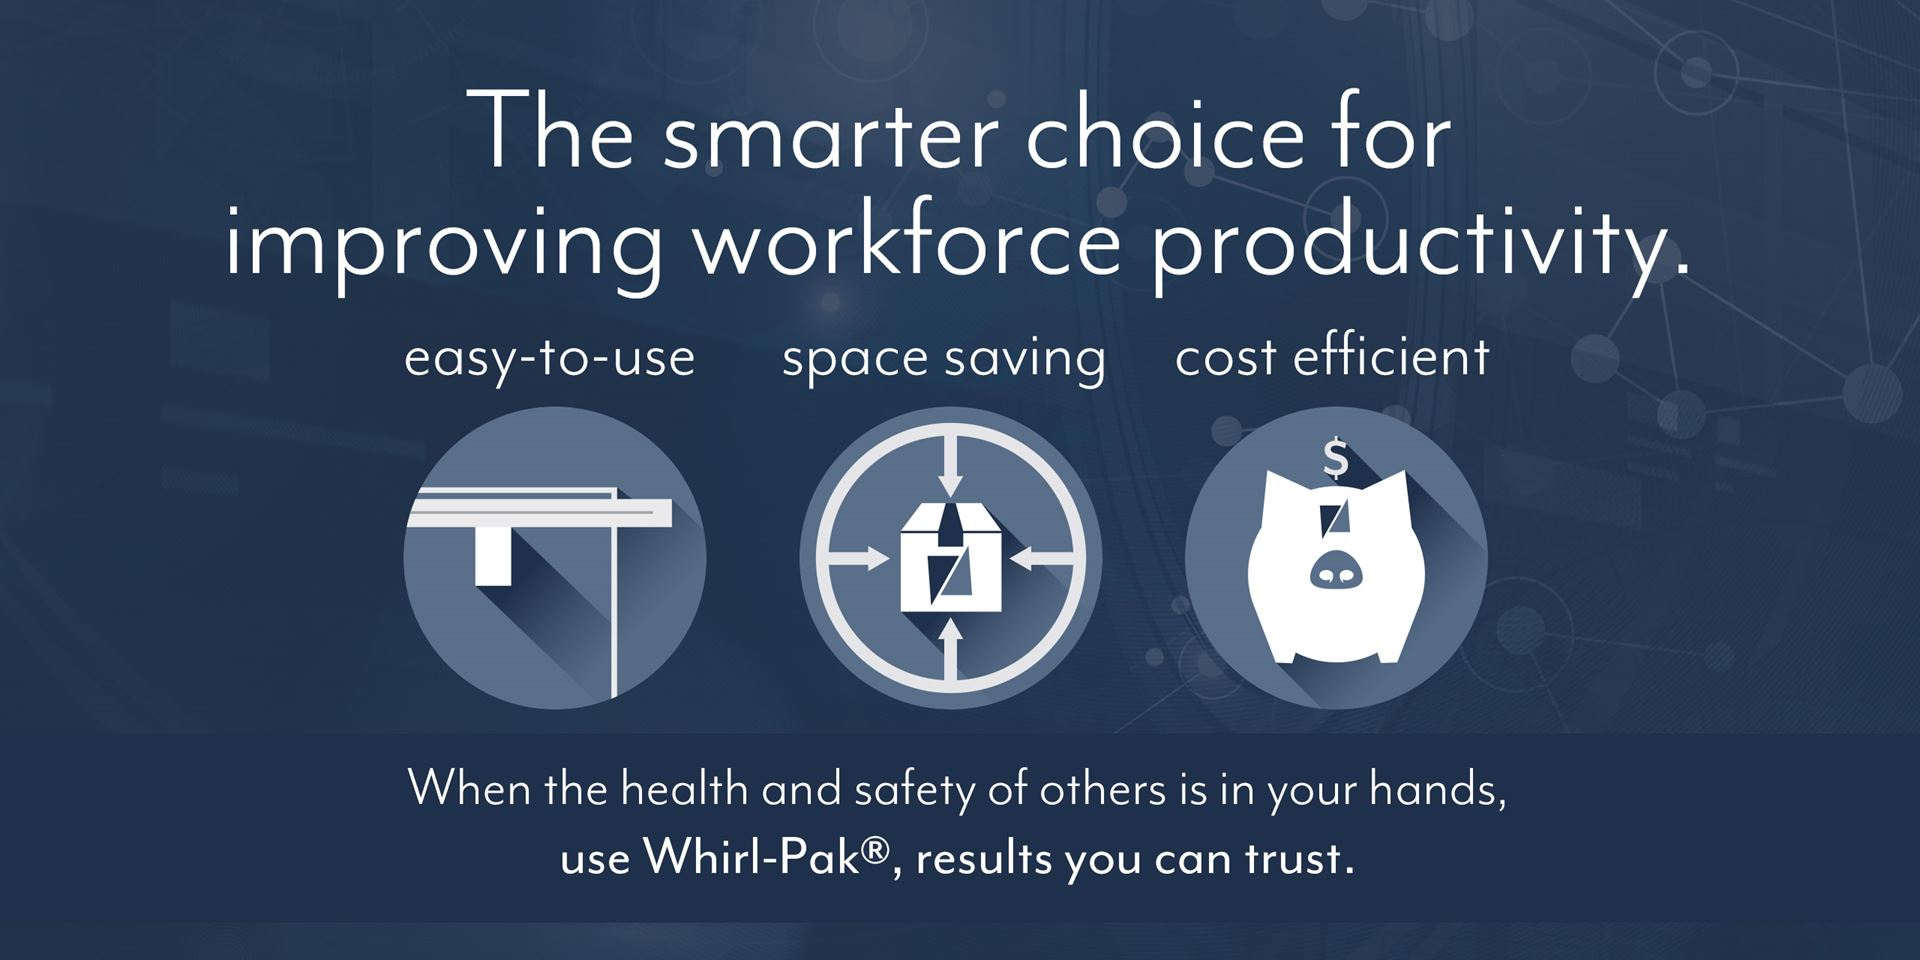 Improve workforce productivity with Whirl-pak bags